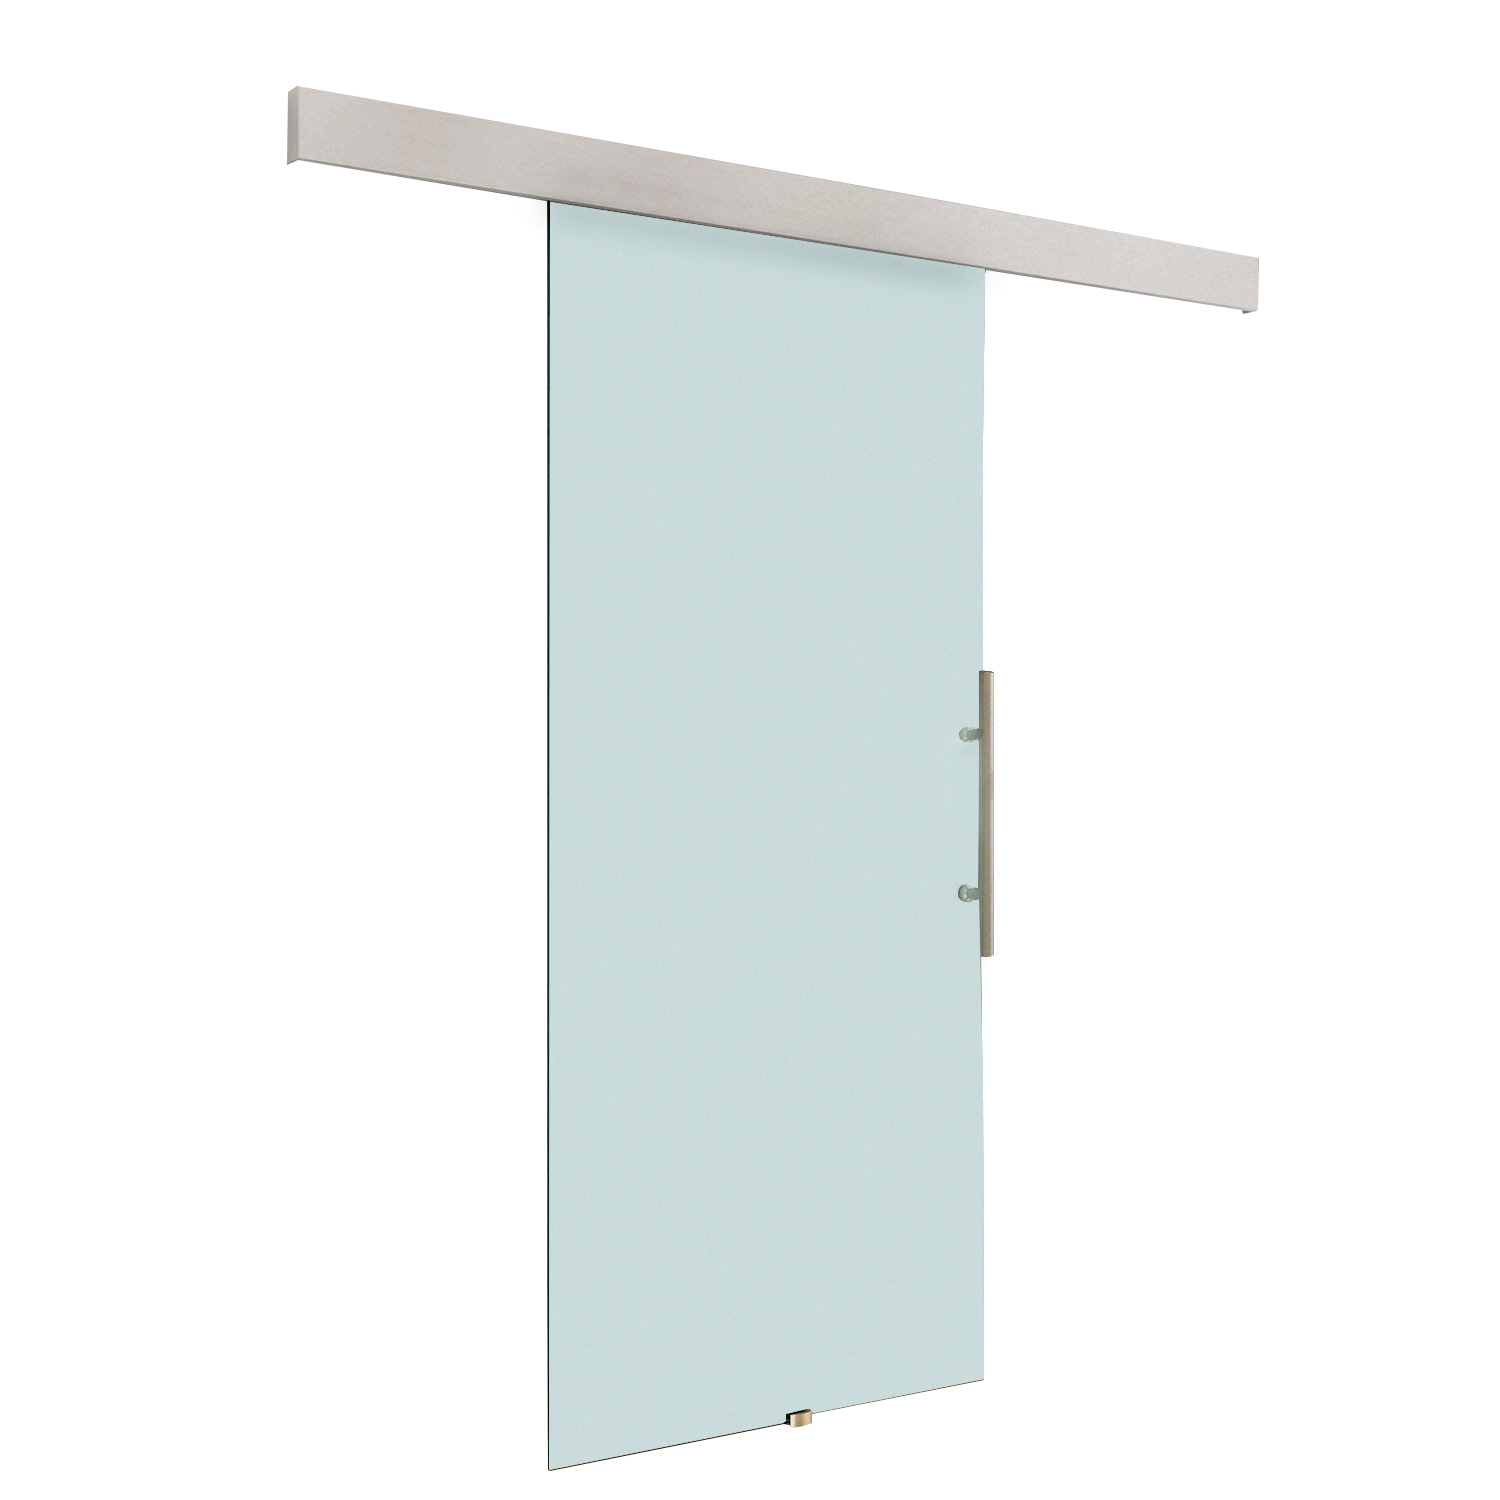 HOMCOM Sliding Door Interior Frosted Glass With Tracks And Handle For Bathroom Kitchen Study 205x77.5x0.8cm